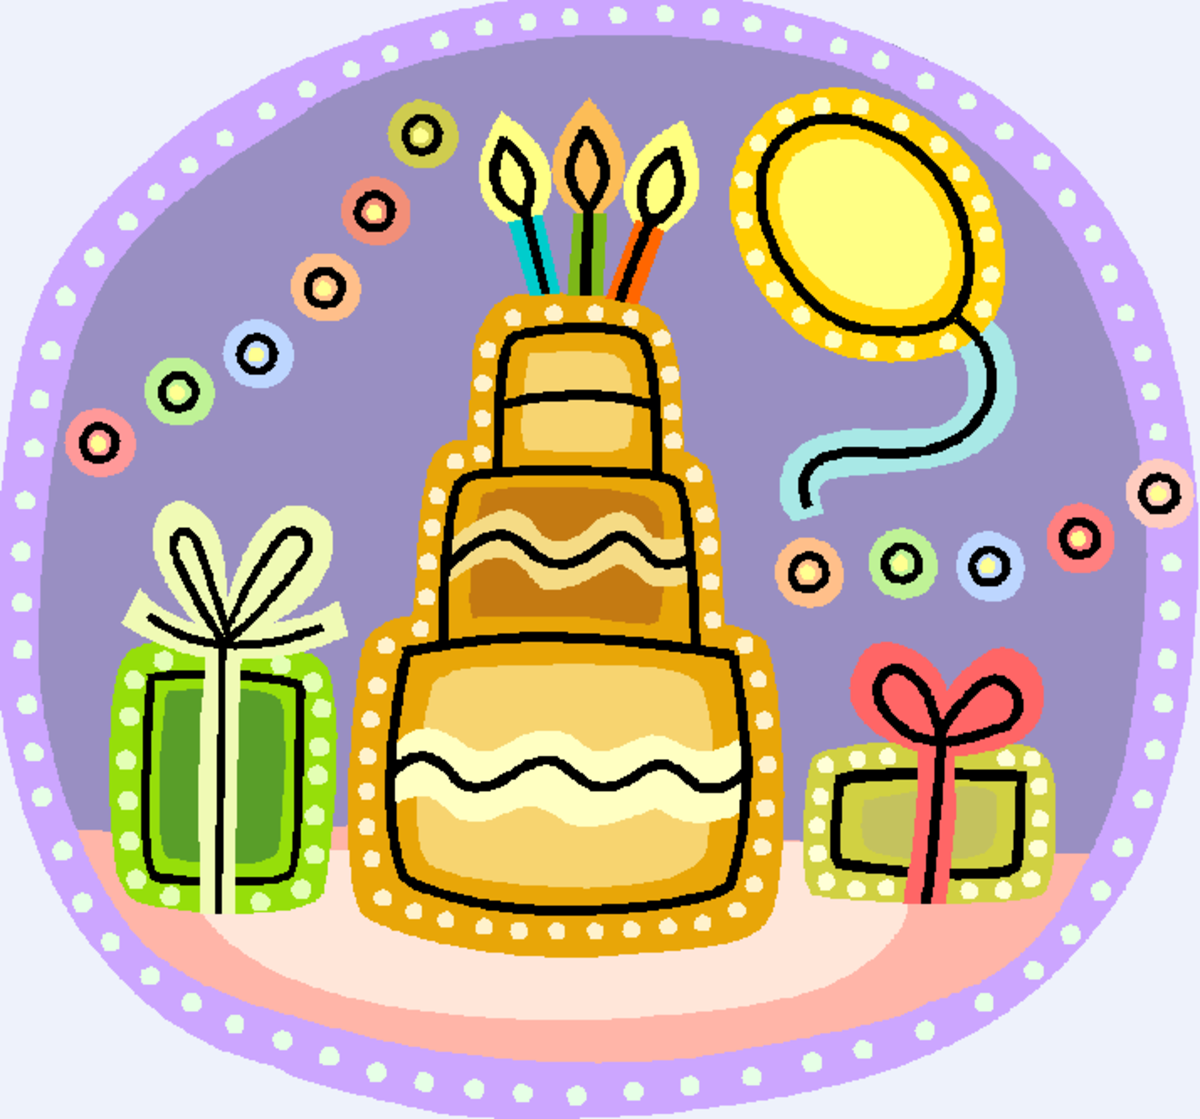 Cake with Candles, Birthday Presents and Balloon